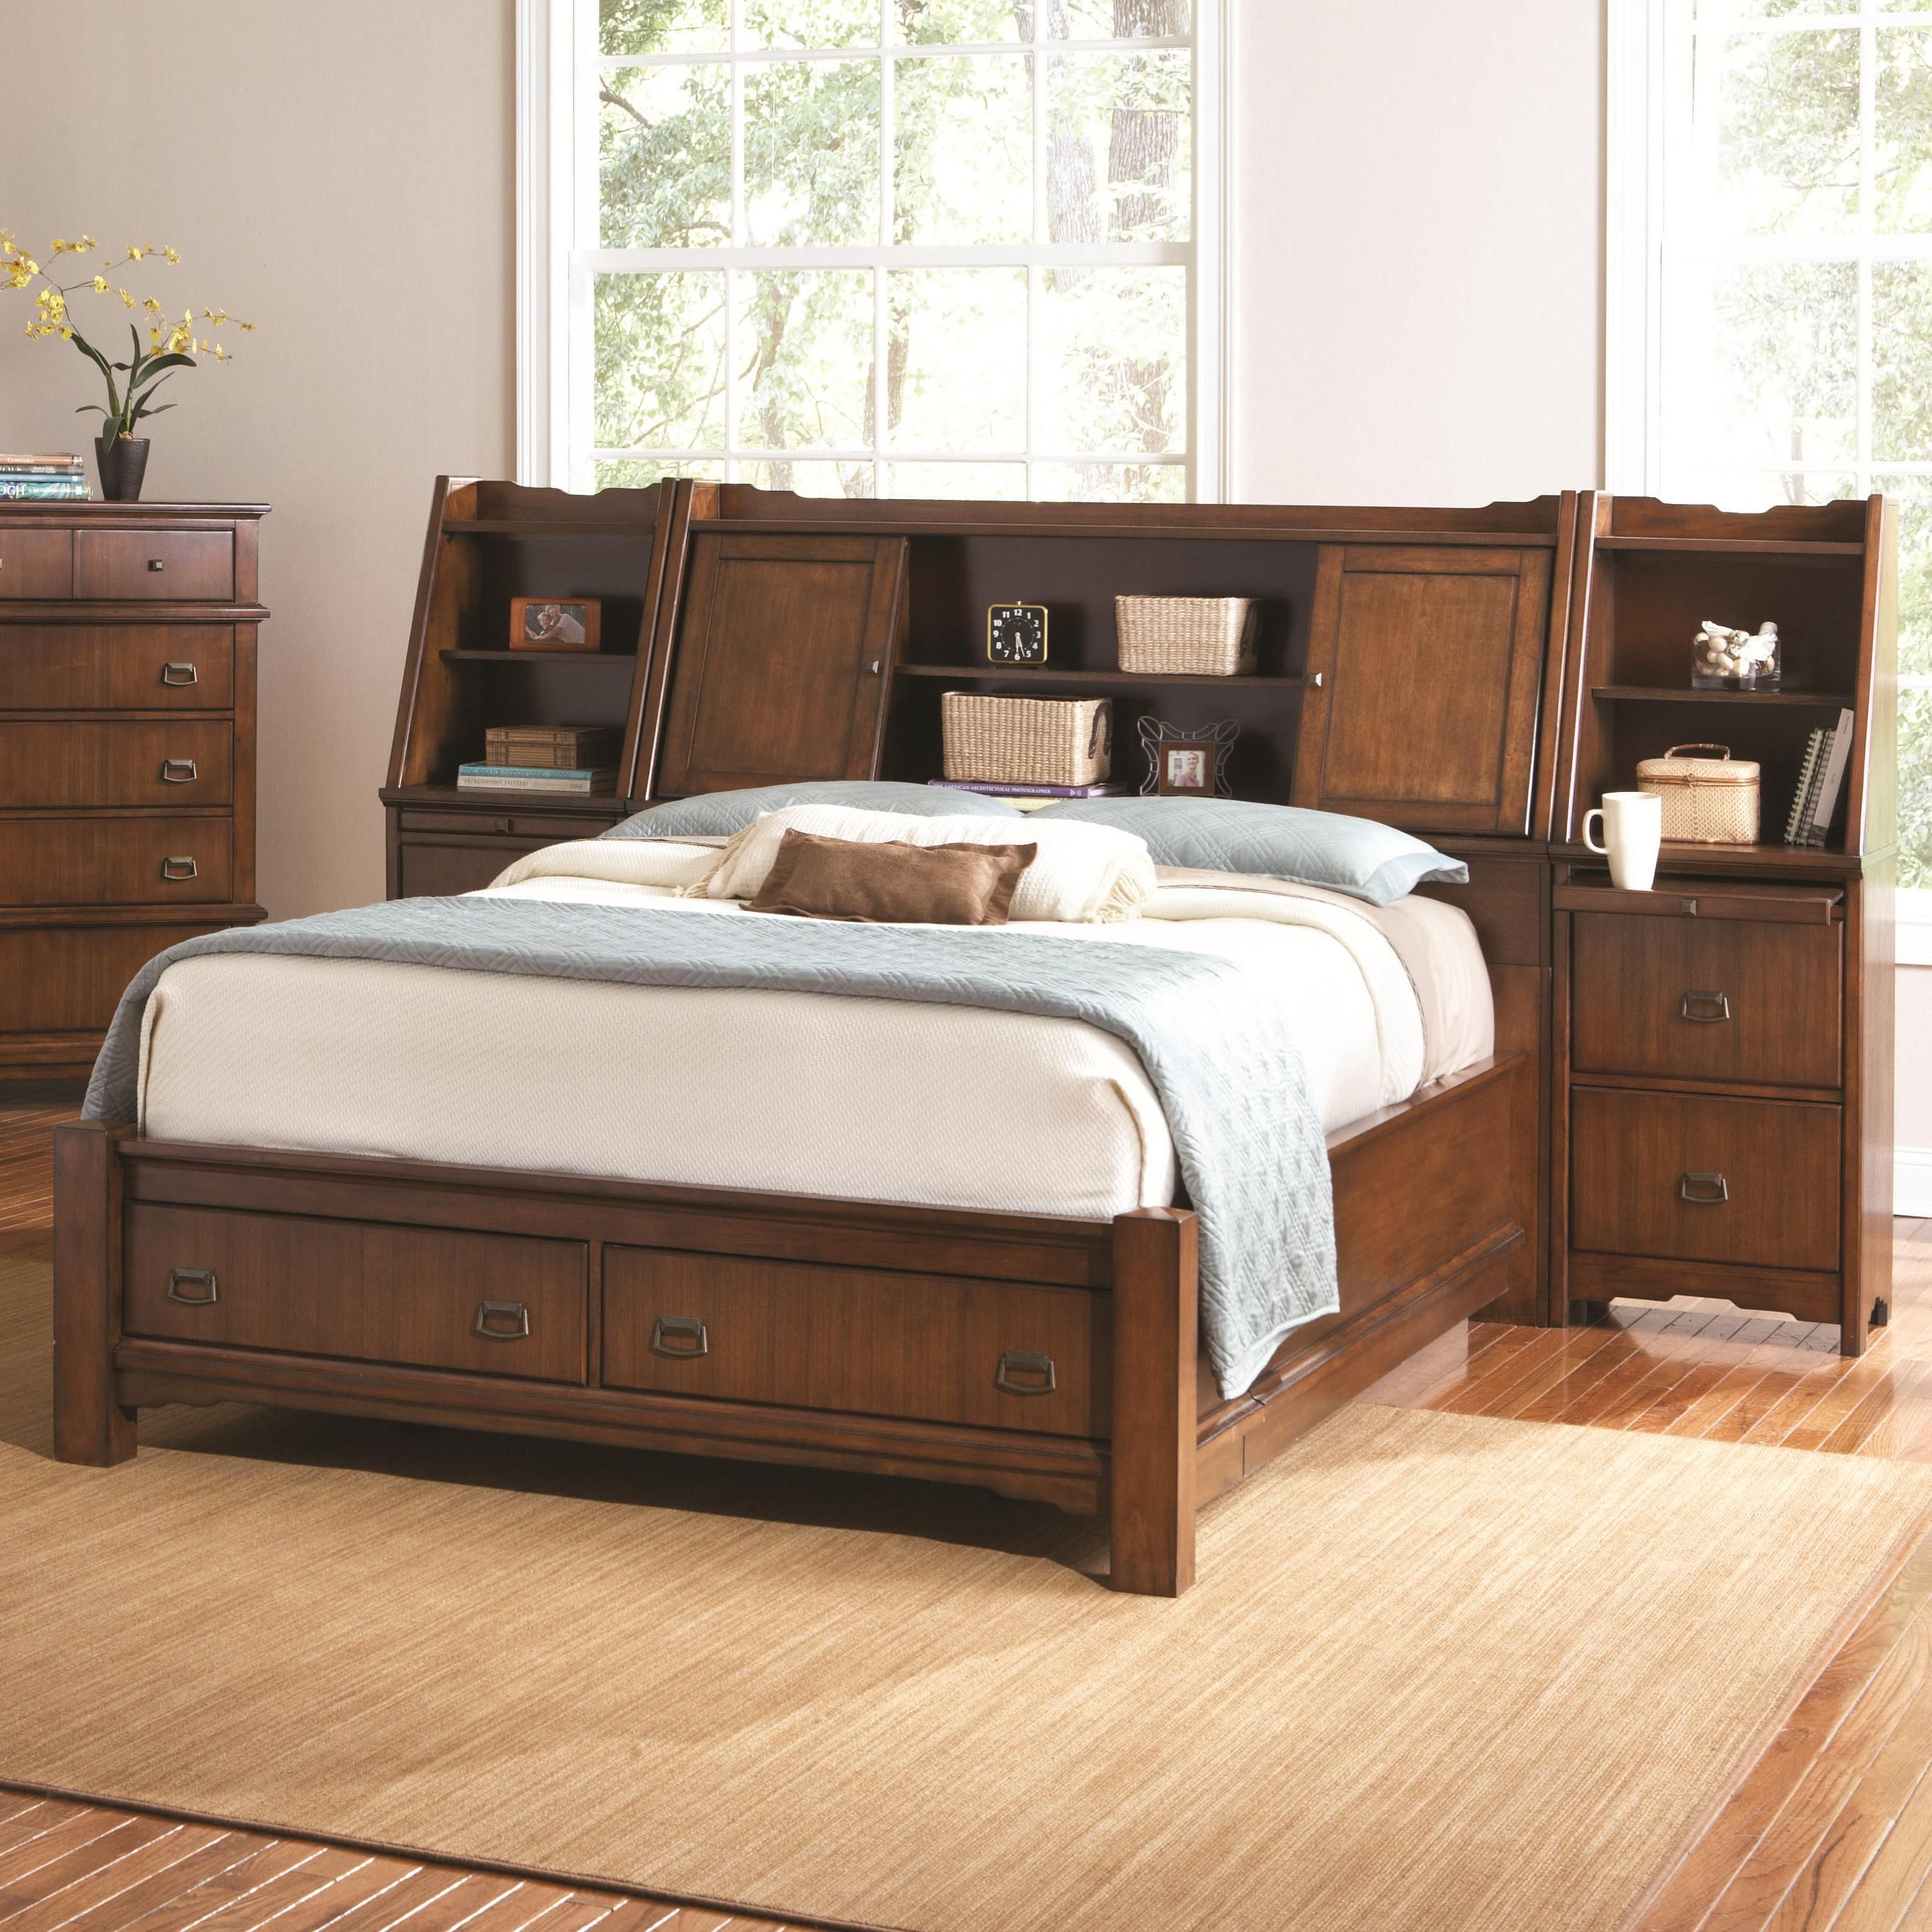 Grendel Eastern King Bookcase Bed With Footboard Storage And Hutch Headboard Coaster